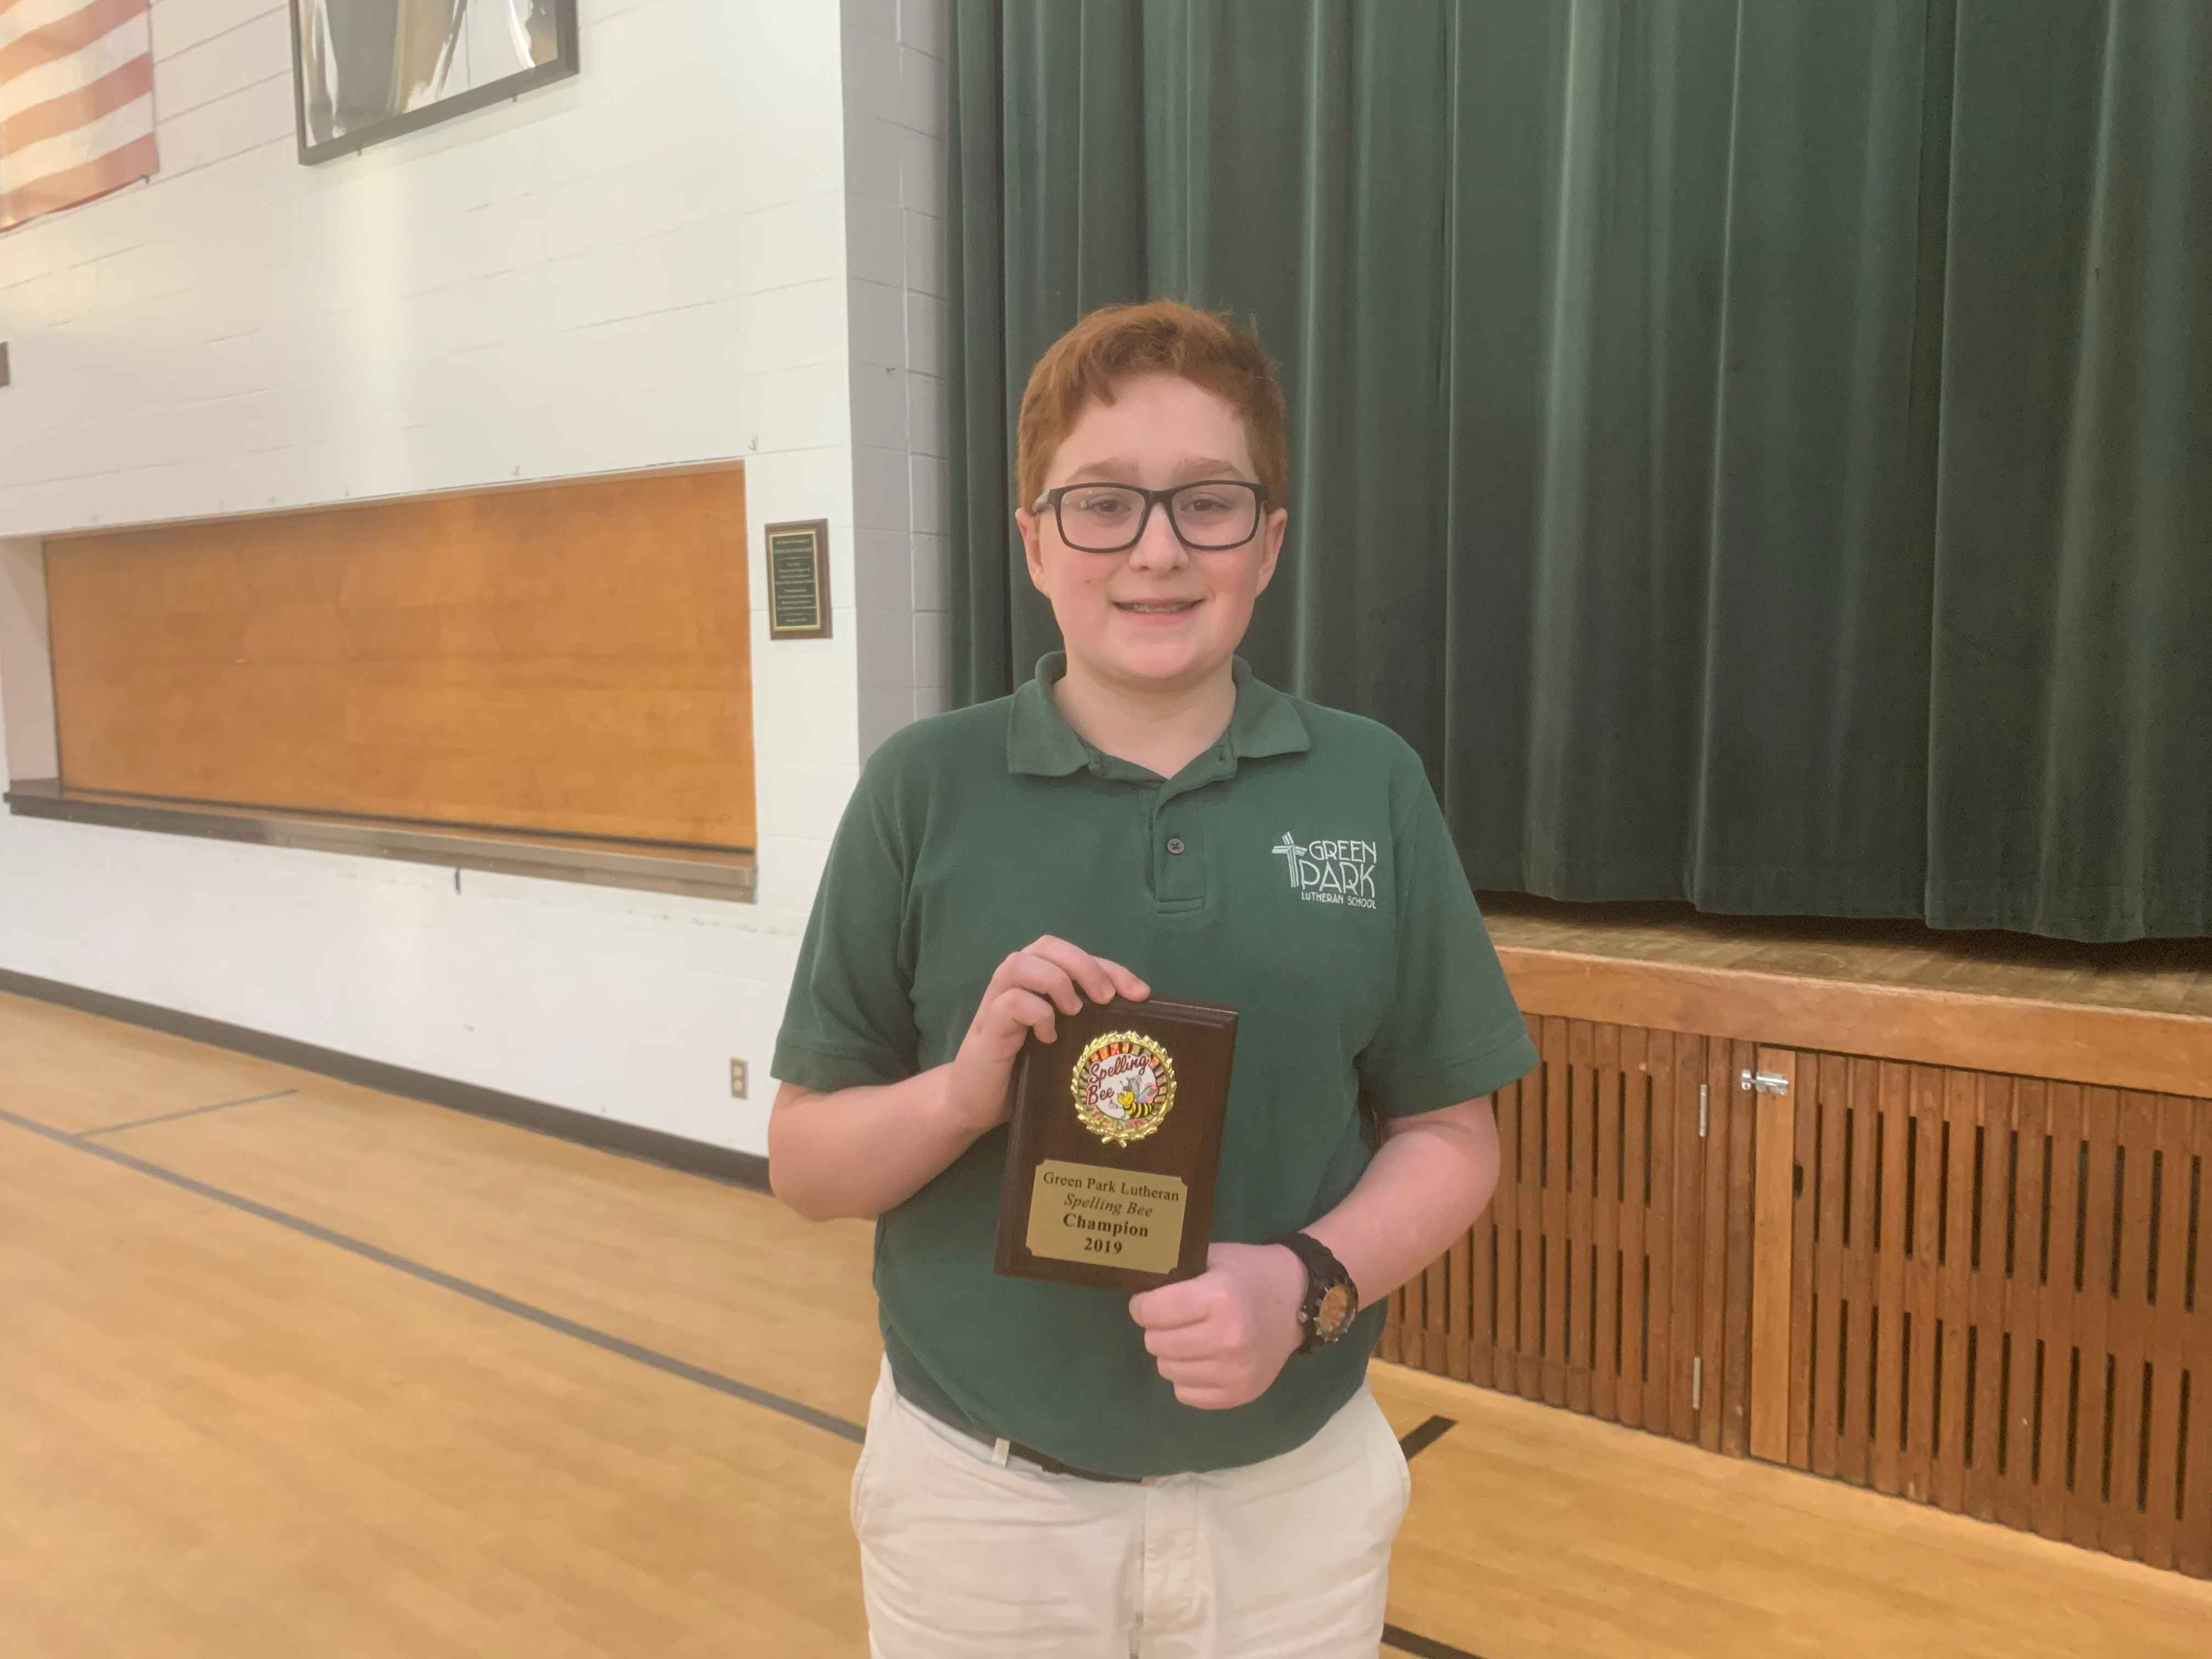 2019 Spelling Bee Champion – Ethan H.